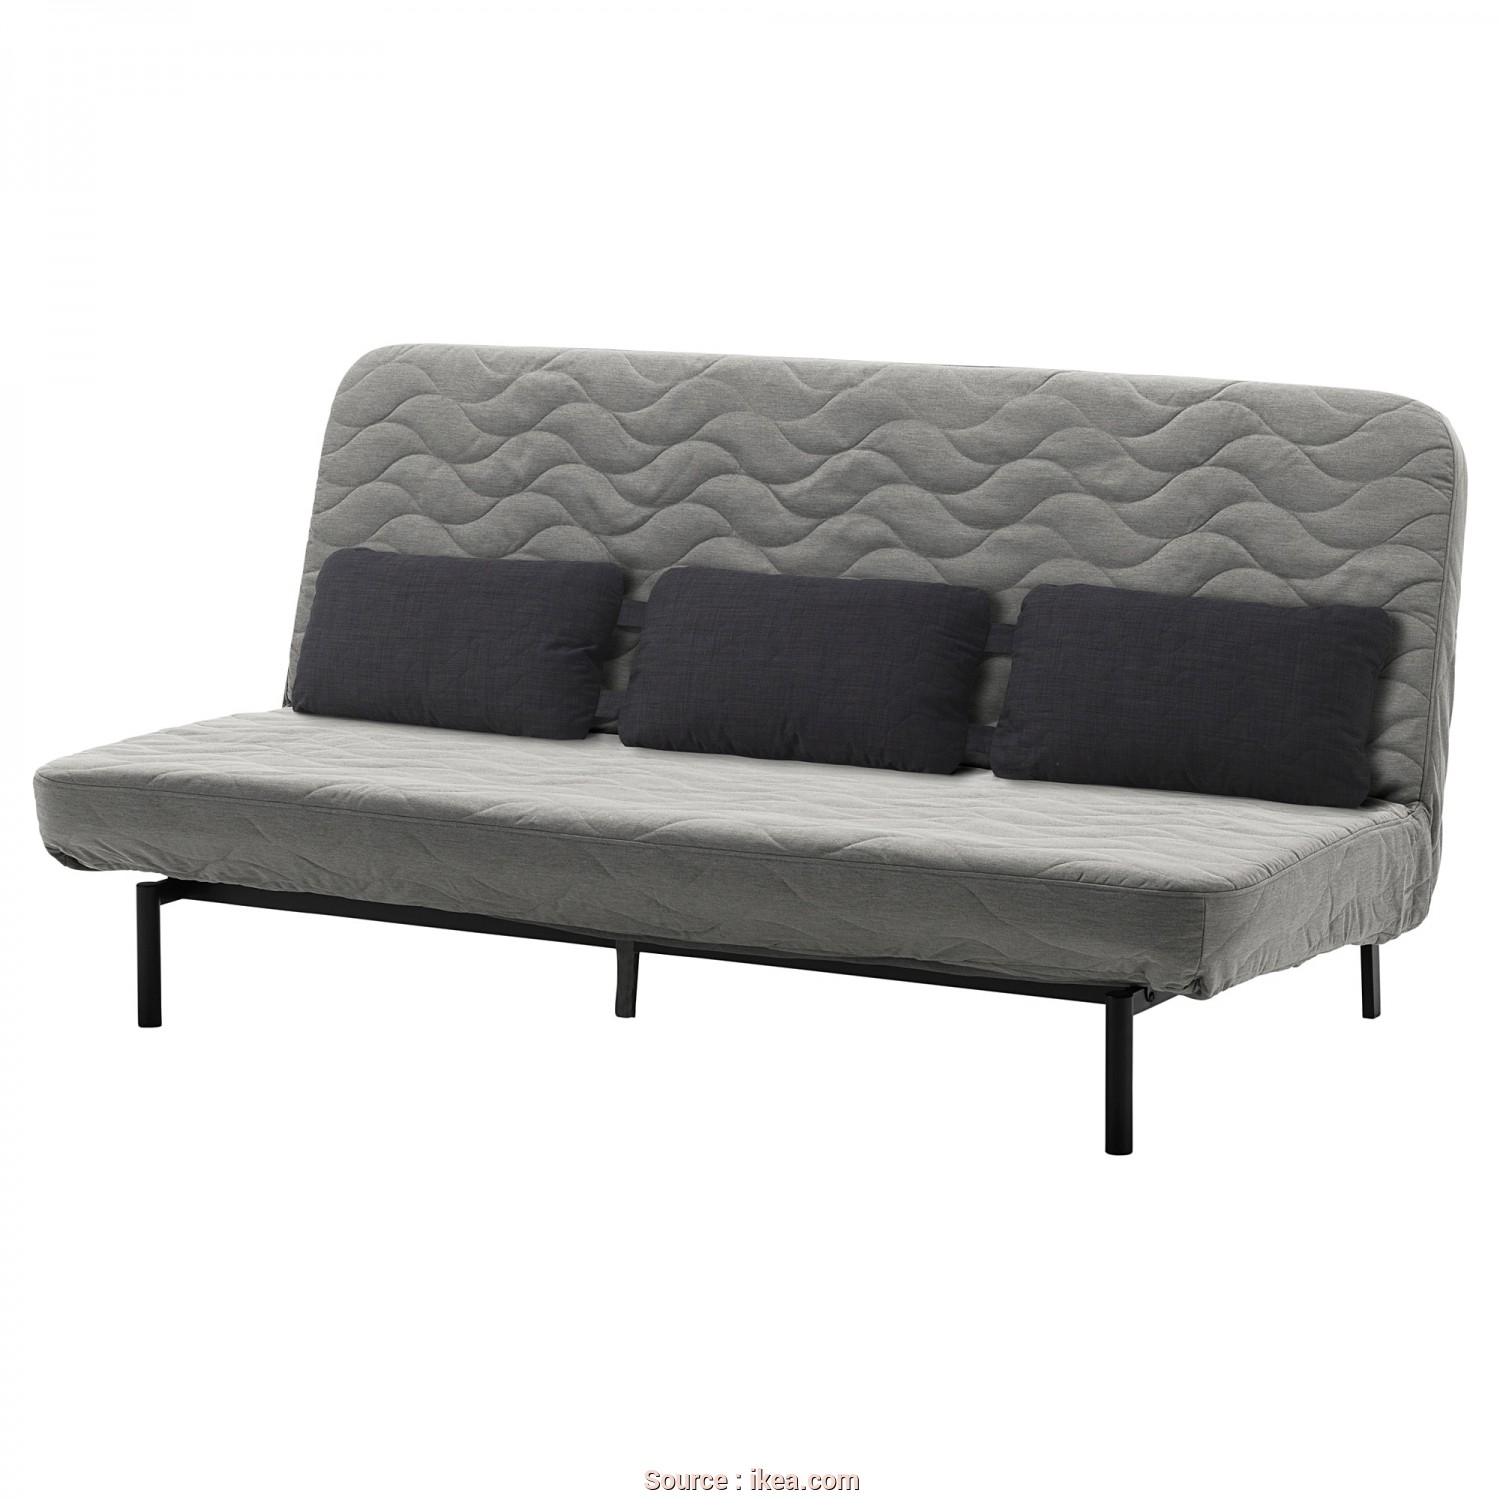 Futon Ikea Uk, Deale IKEA NYHAMN Sofa-Bed With Triple Cushion